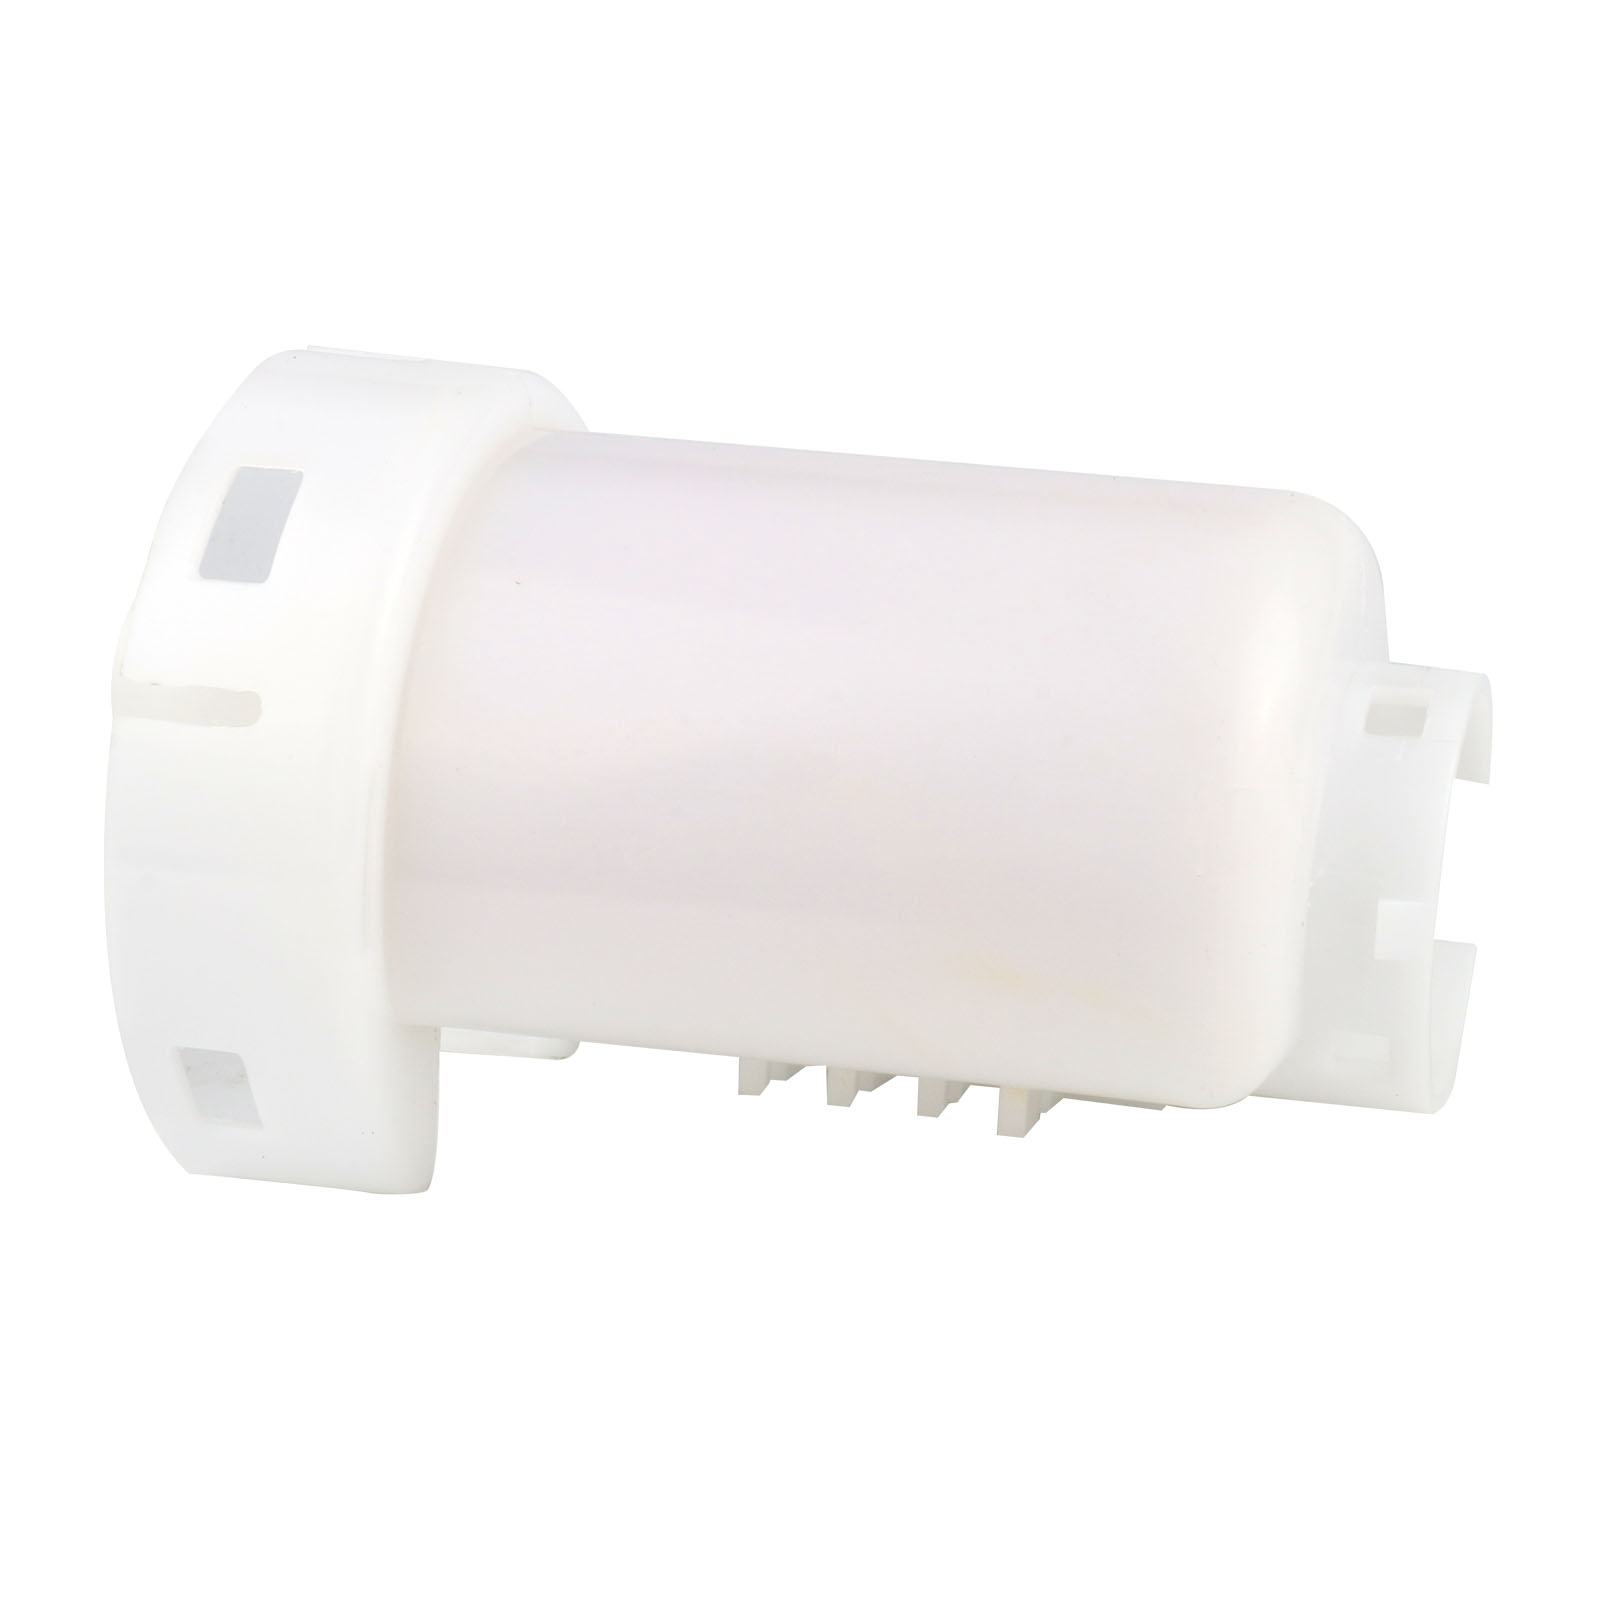 hight resolution of car gas gasoline petrol fuel filter oe 23300 23040 replacement parts for toyota daihatsu charade faw